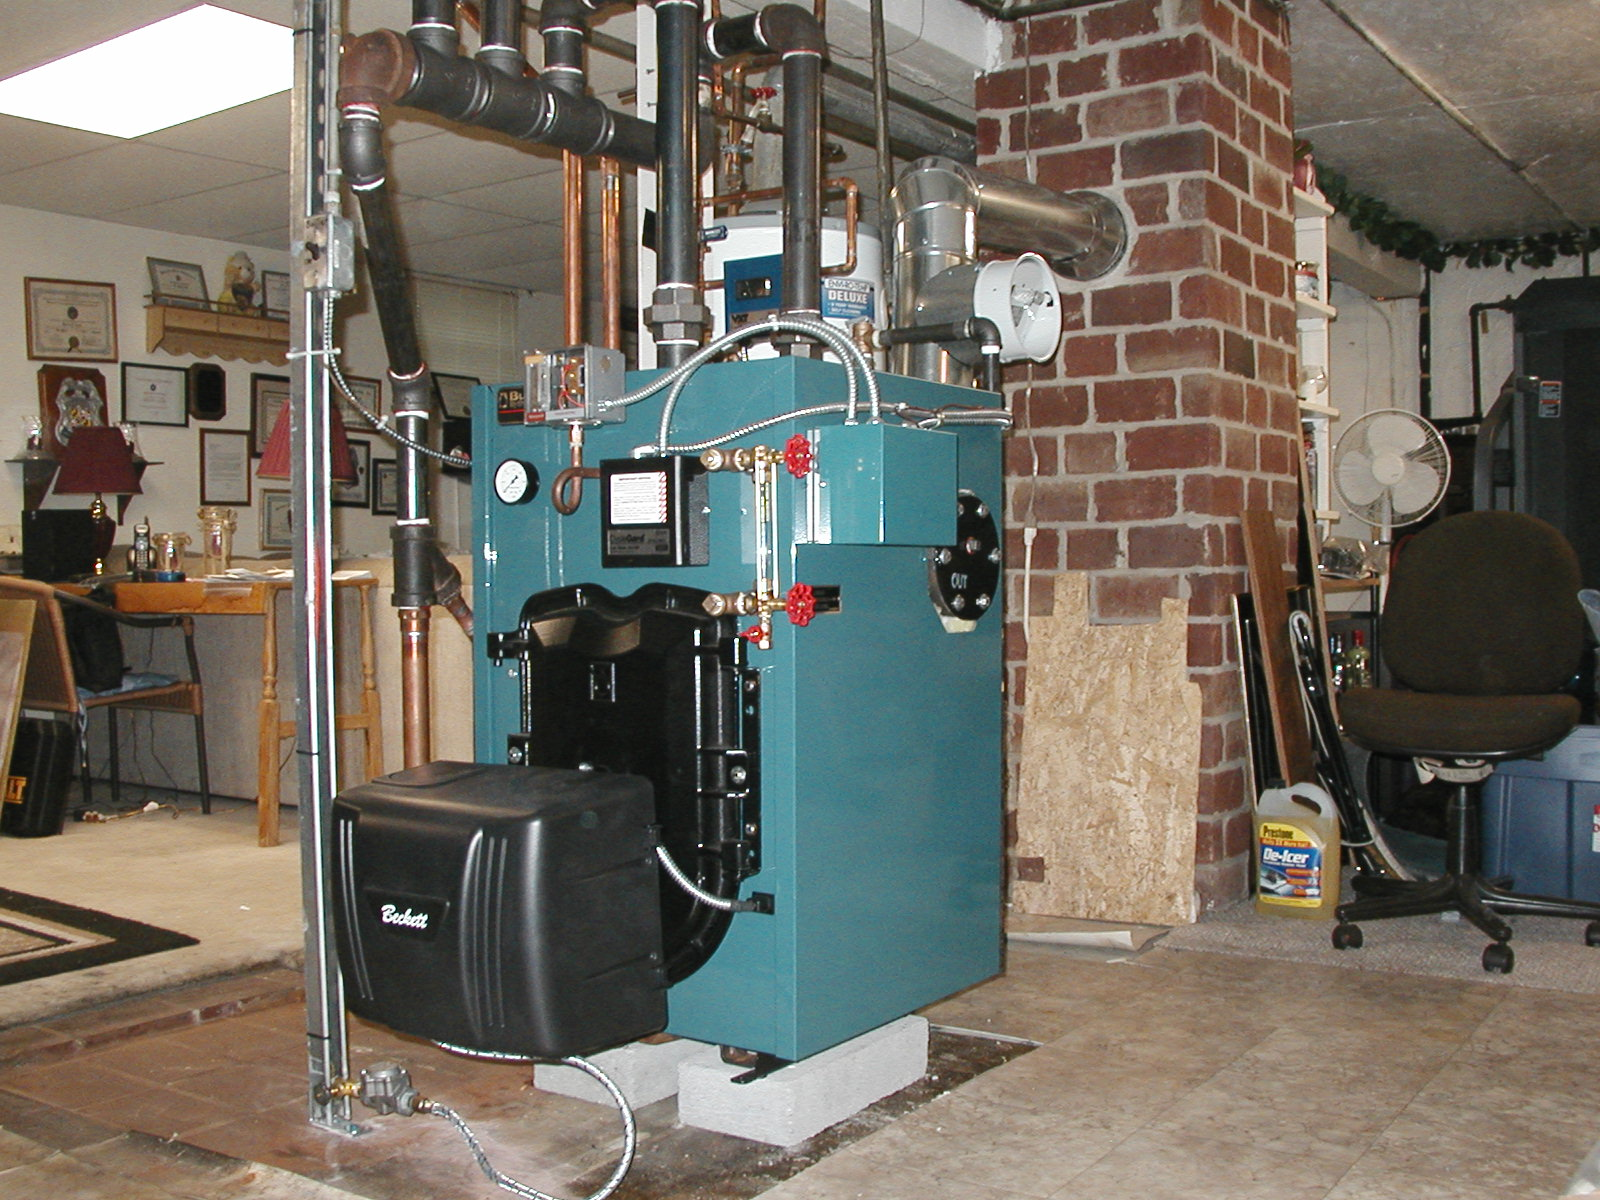 Furnace to boiler conversion in AK — Heating Help: The Wall